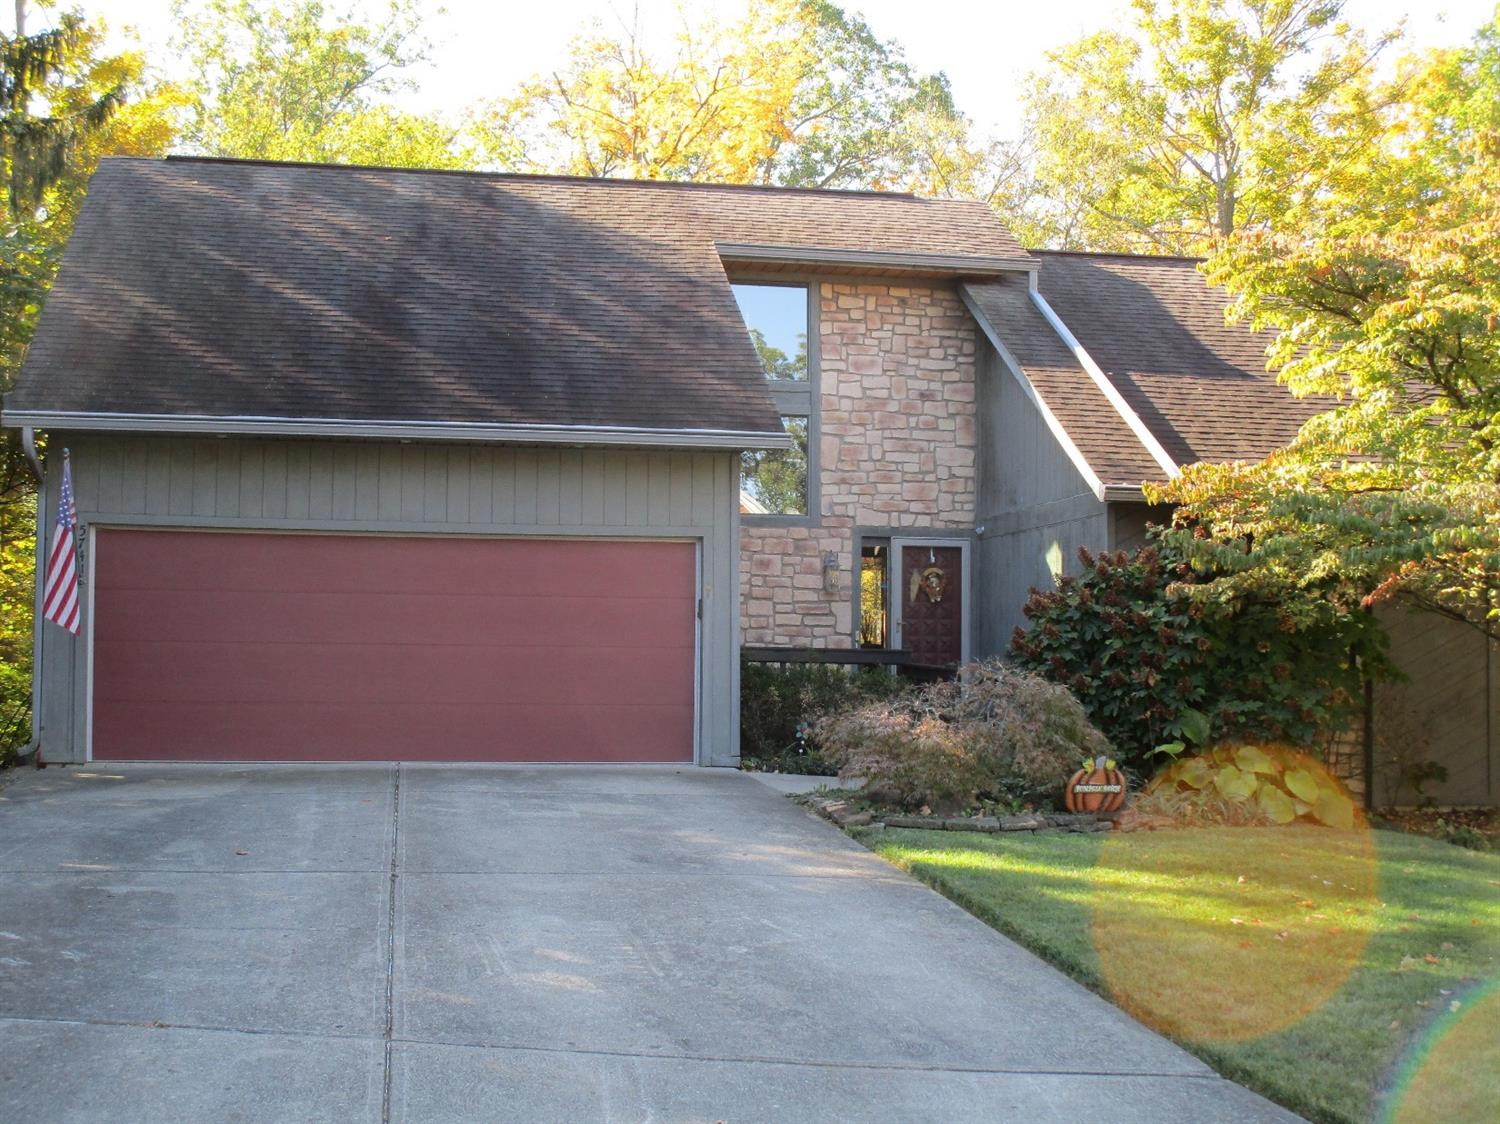 Welcome home to this 3 bedroom 3 bathroom Contemporary Ranch with Bonus Loft on secluded cul-de-sac wooded lot